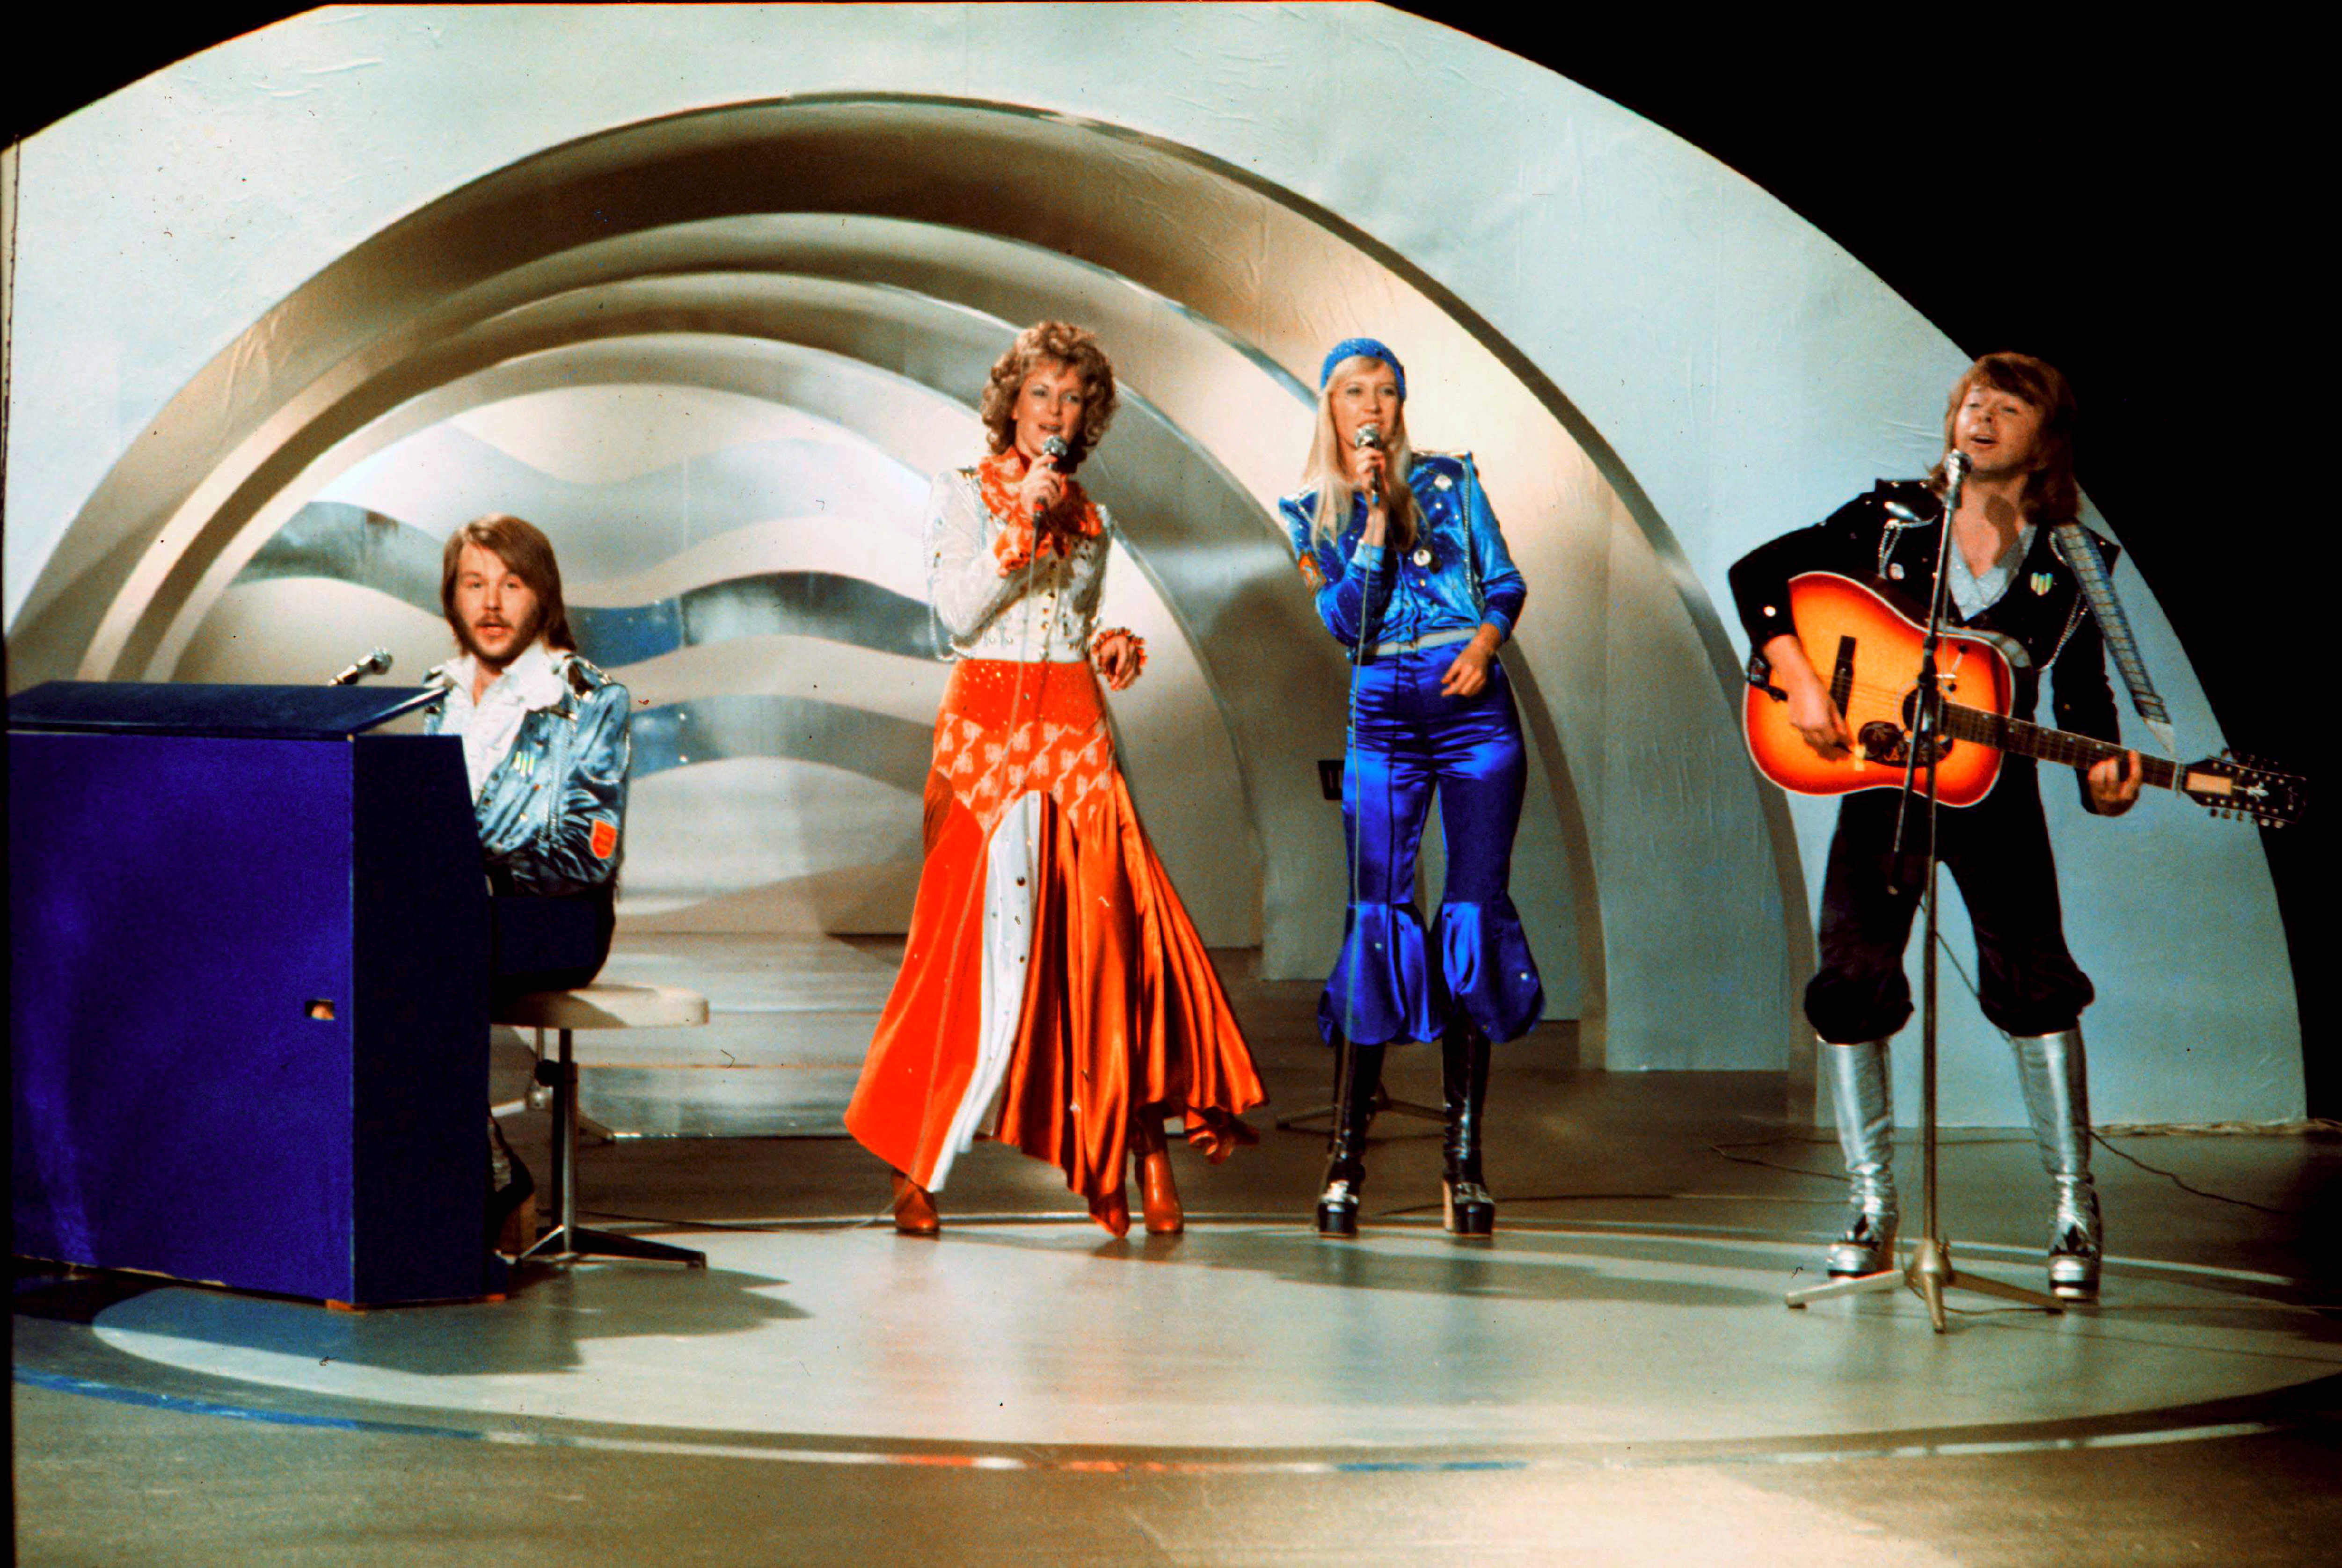 ABBA to drop first studio album in 40 years